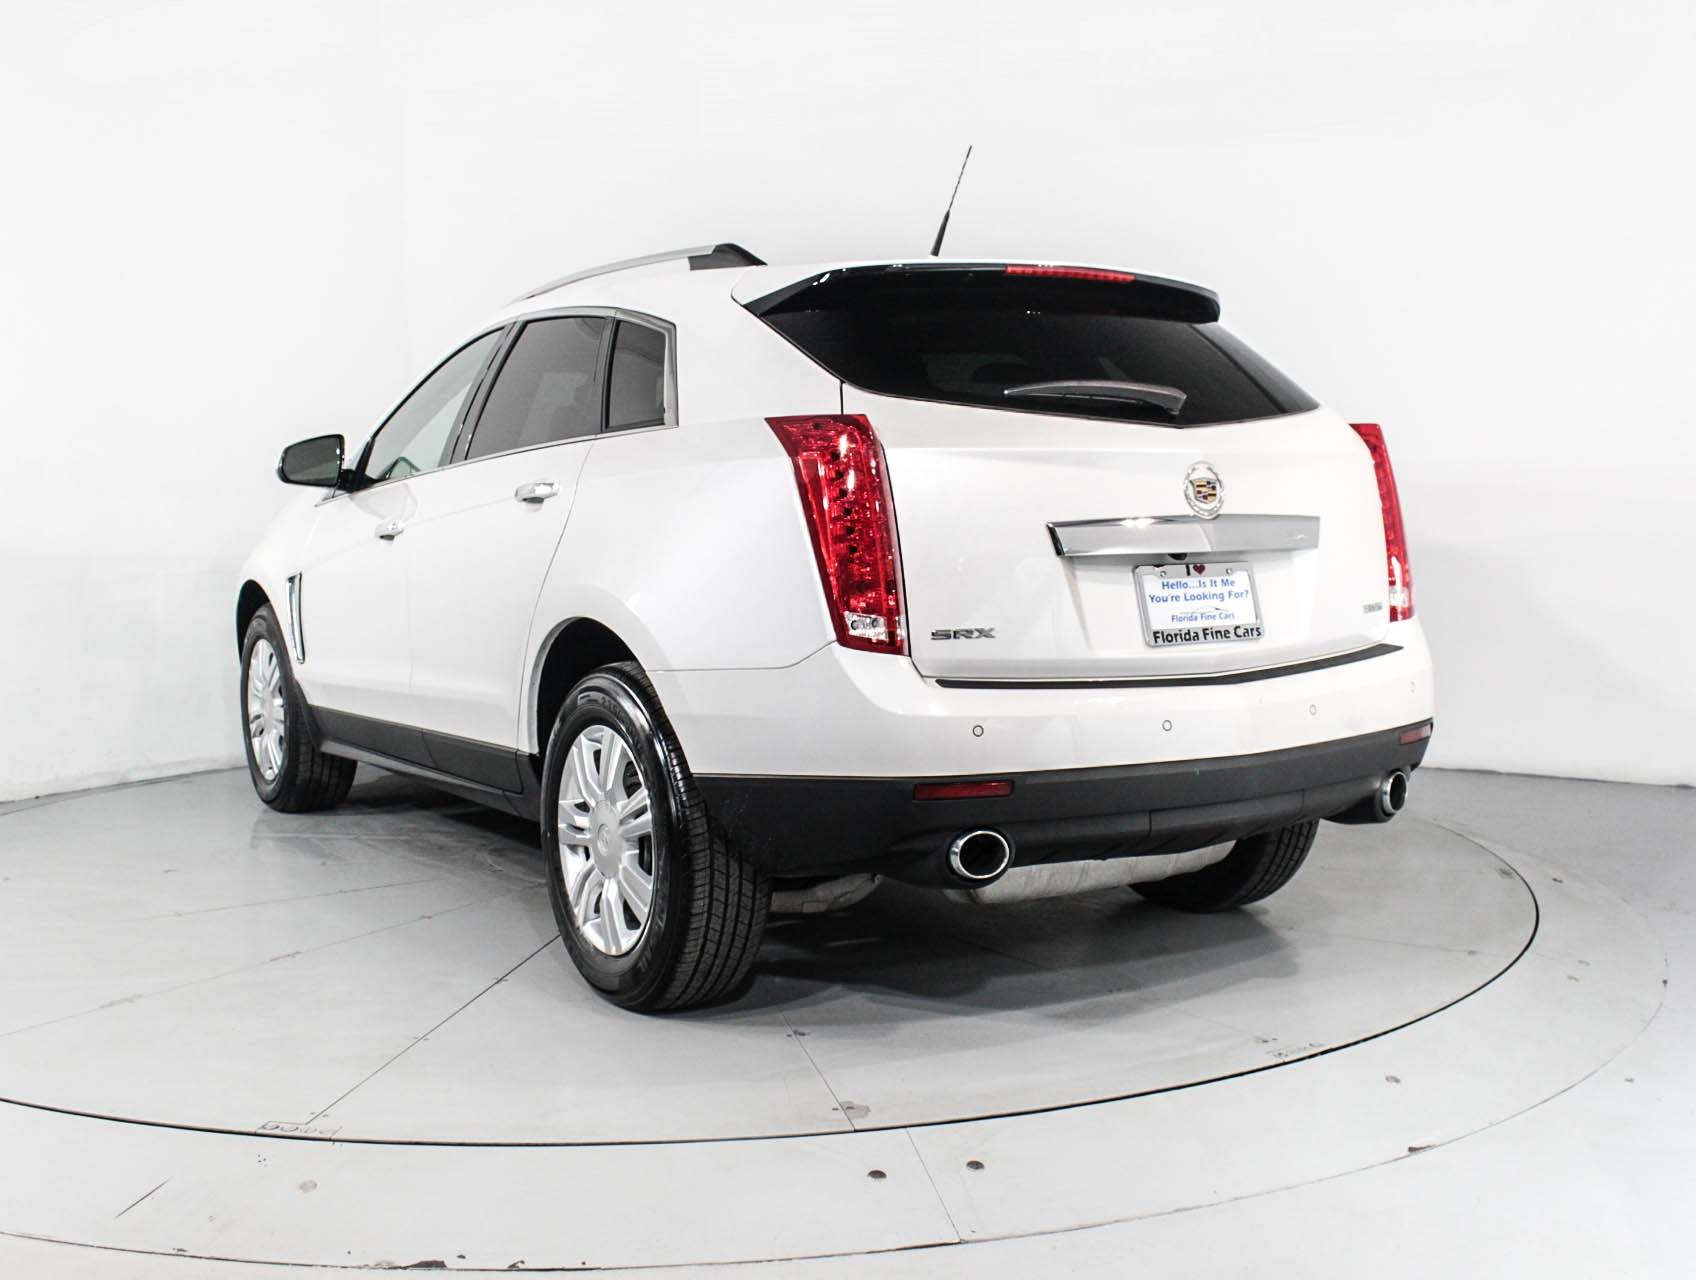 Used 2014 CADILLAC SRX LUXURY SUV for sale in MIAMI FL